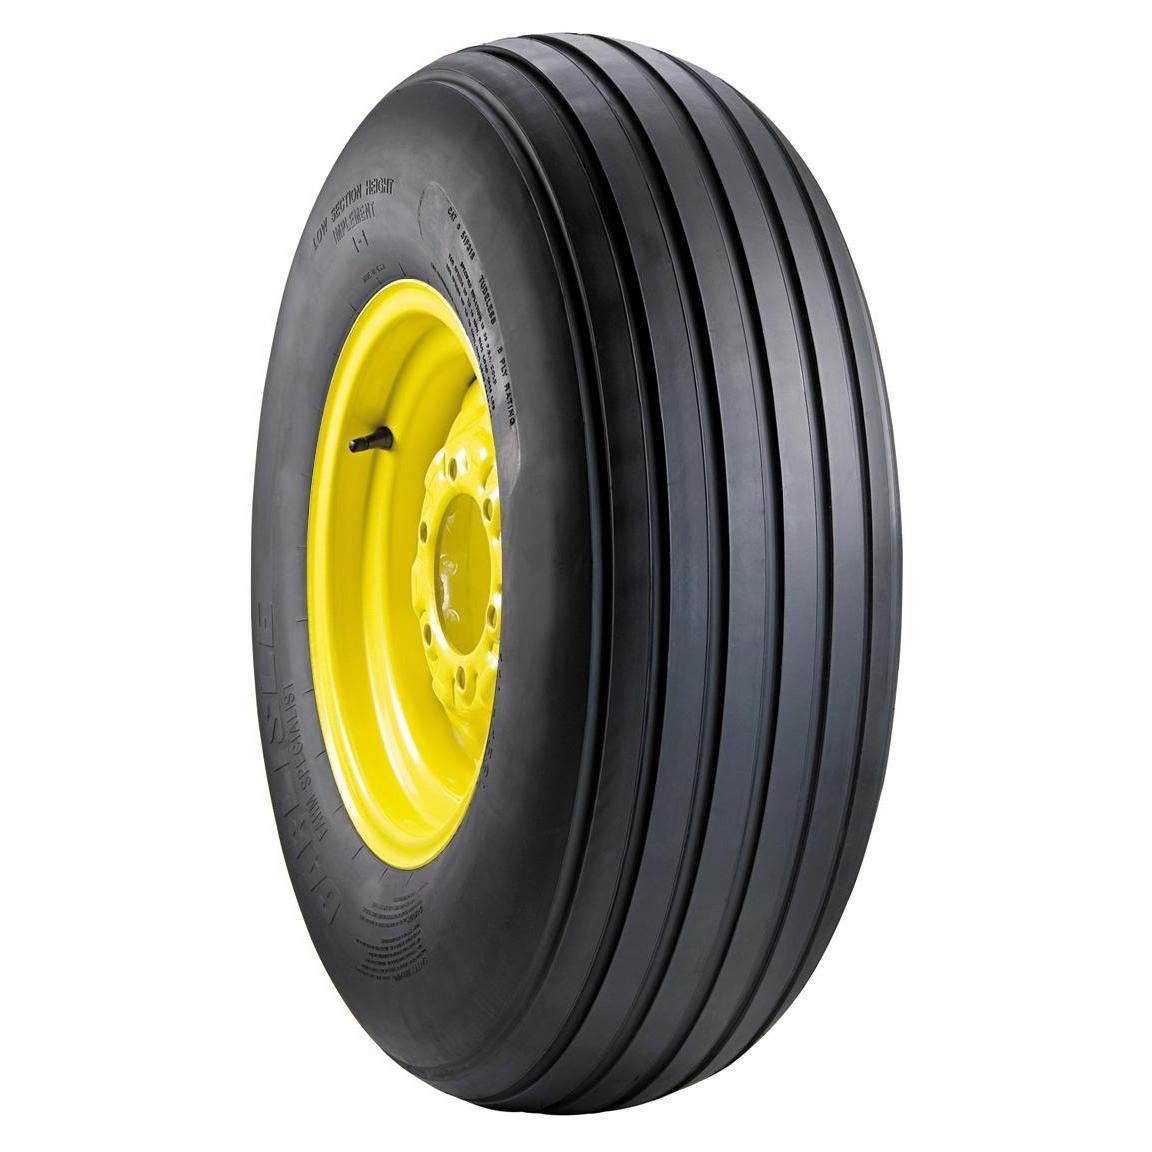 Carlisle Farm Specialist I-1 Agricultural Tire - 14L-16.1...